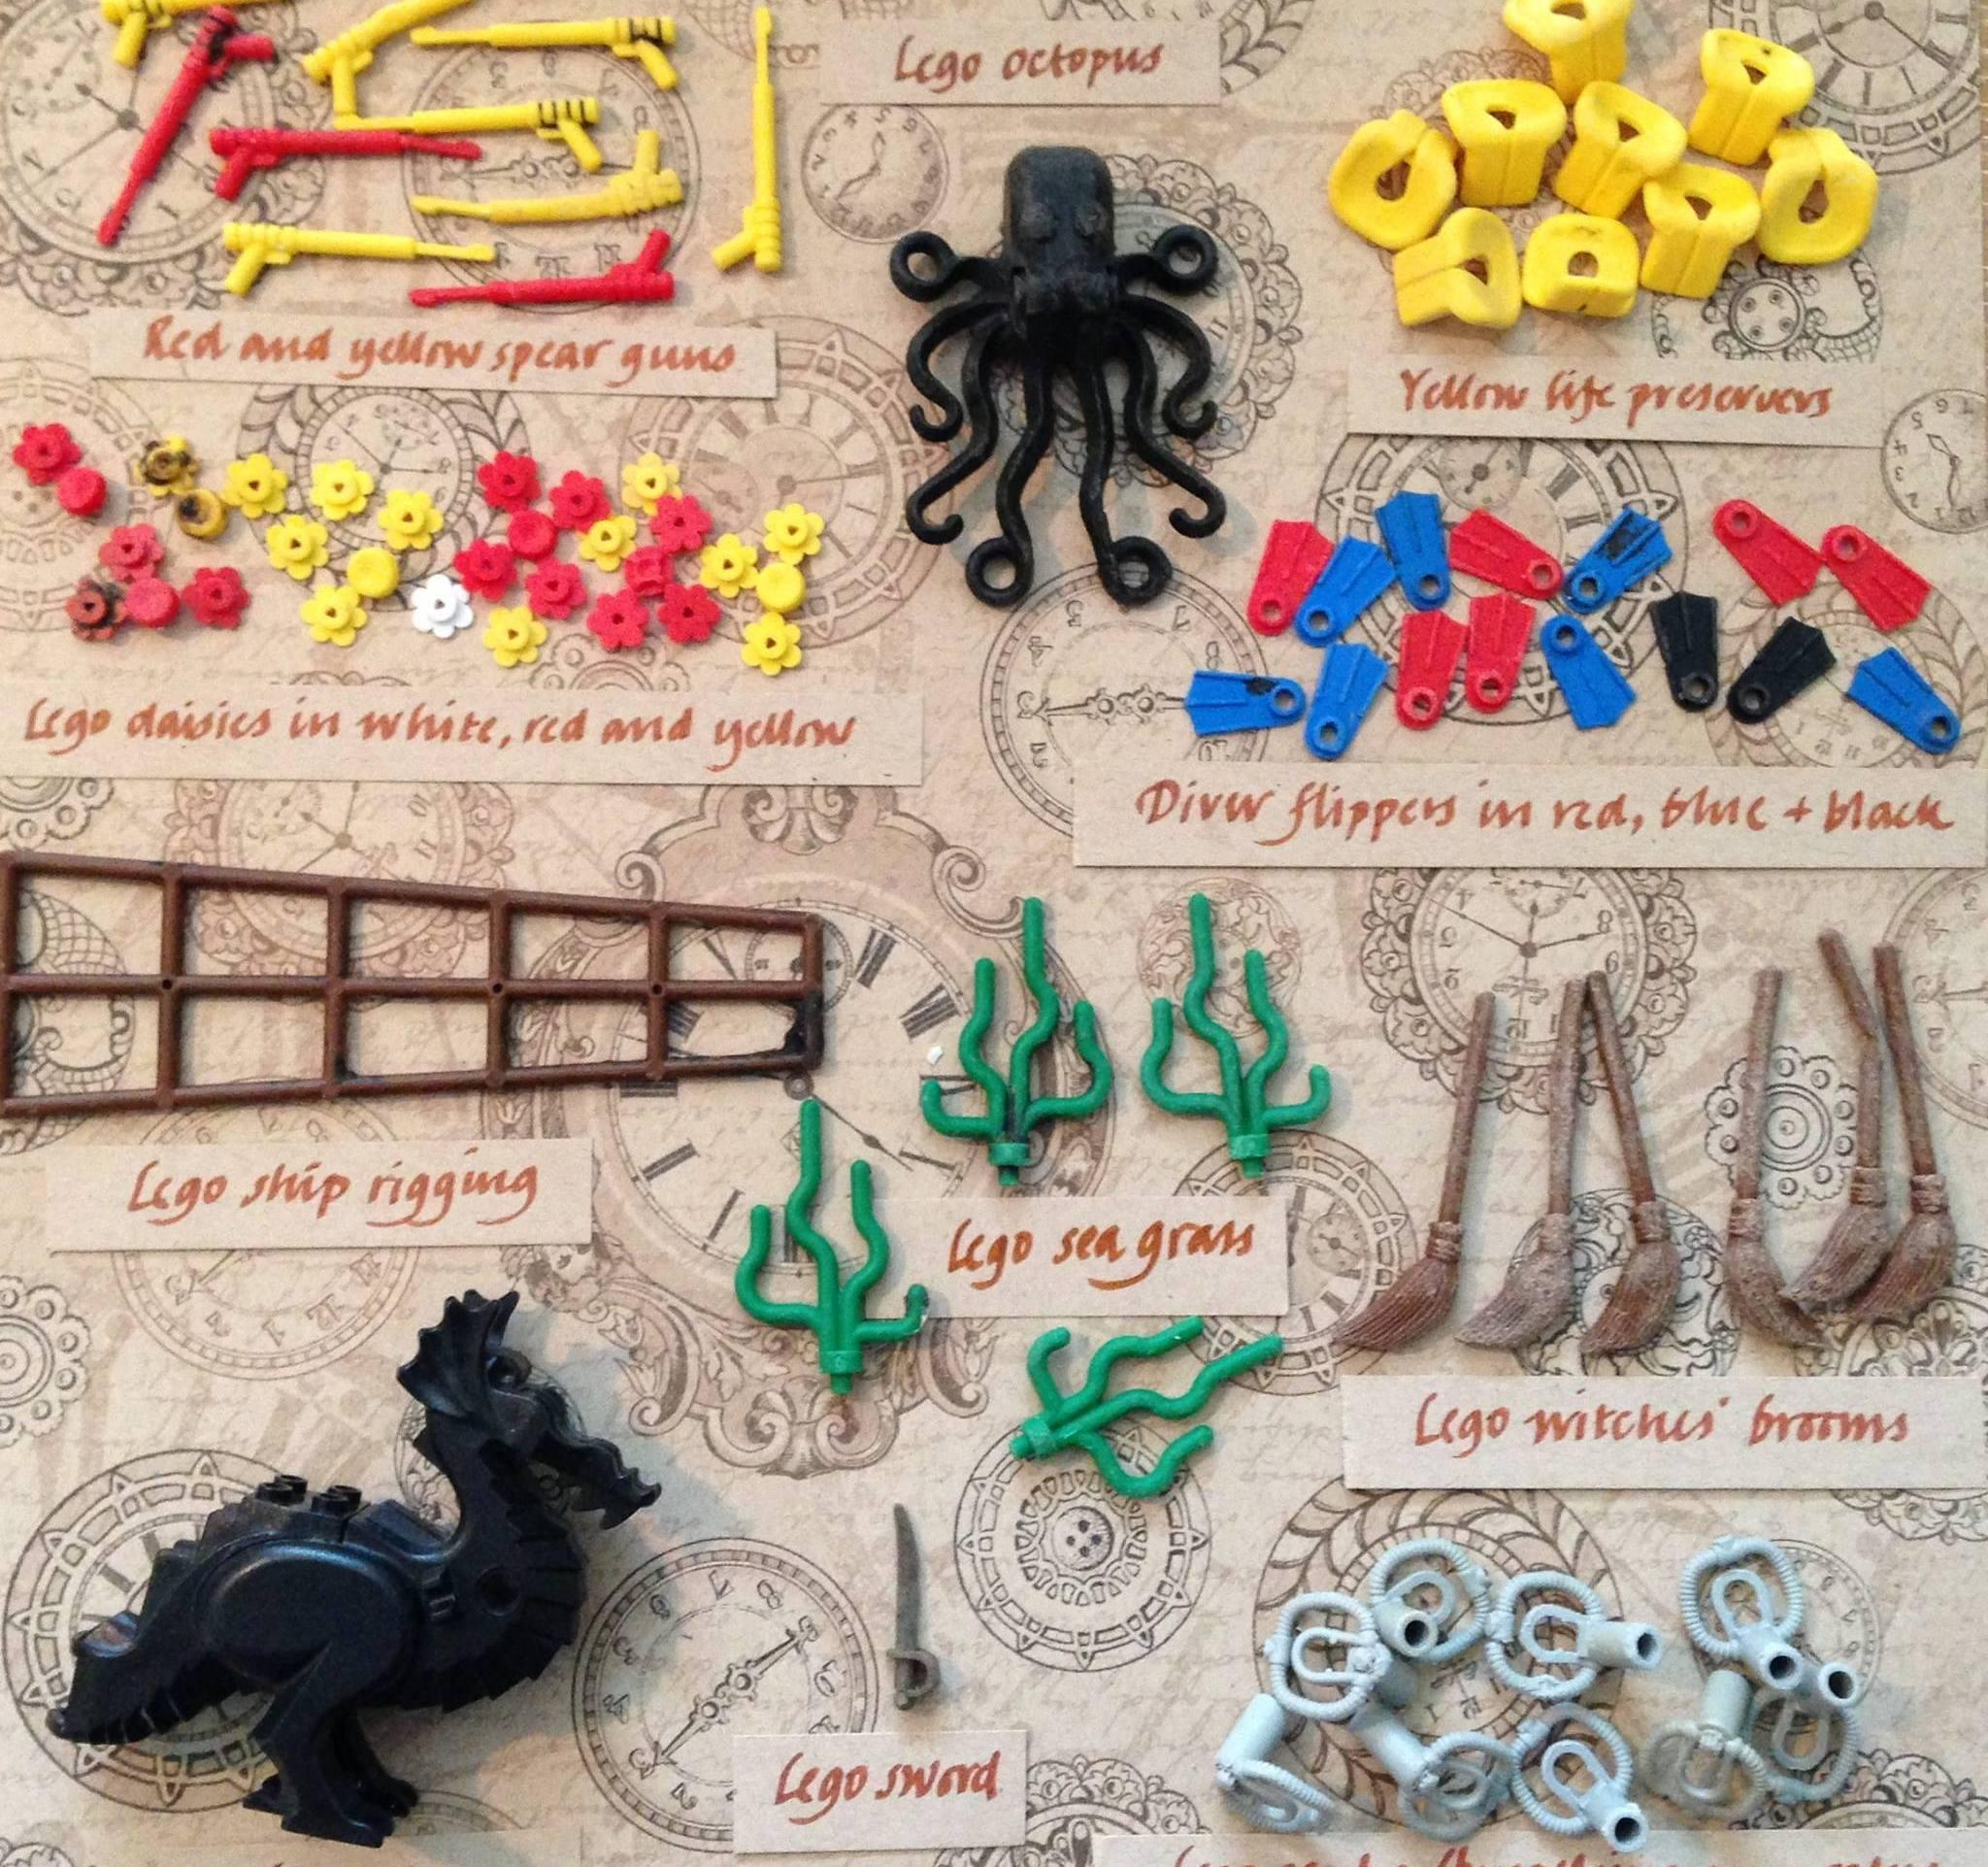 Lost At Sea, Legos Reunite On Beaches And Facebook | WPRL